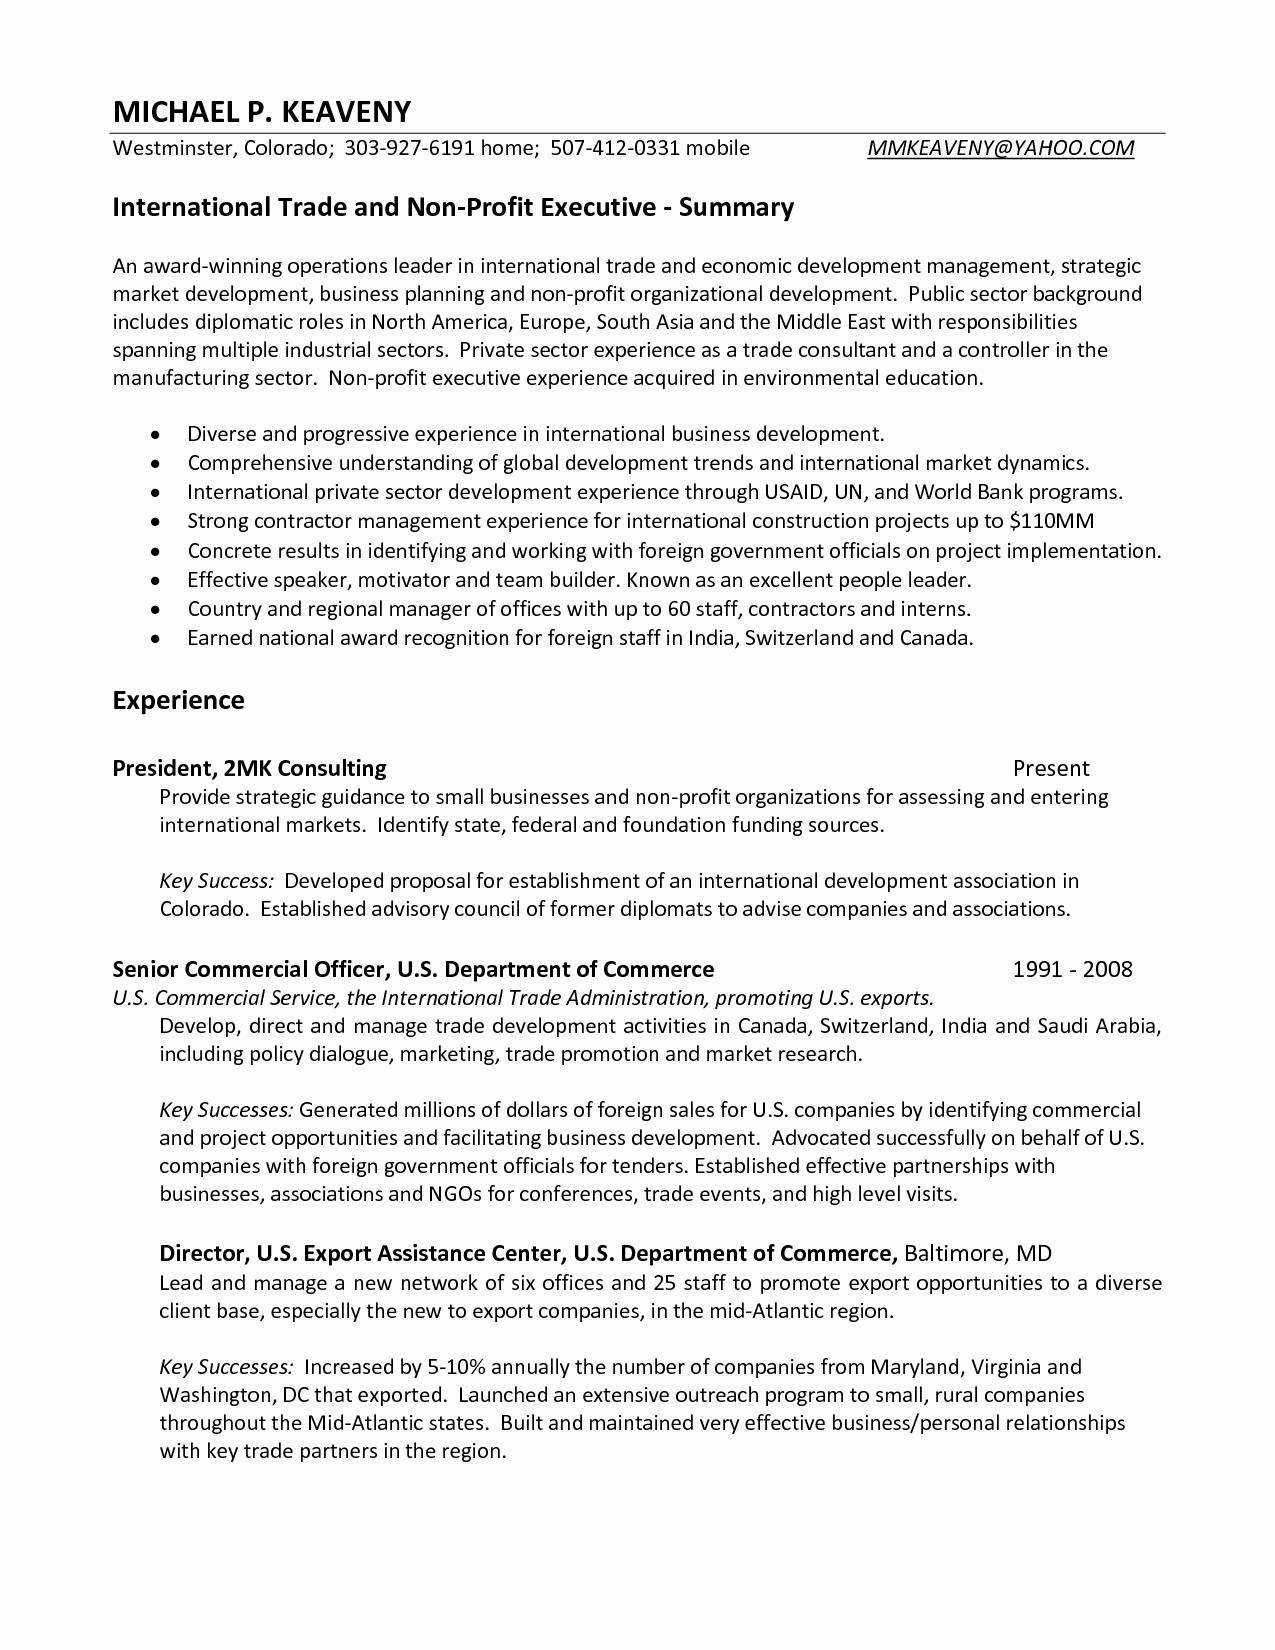 Yahoo Ceo Resume - Yahoo Ceo Resume